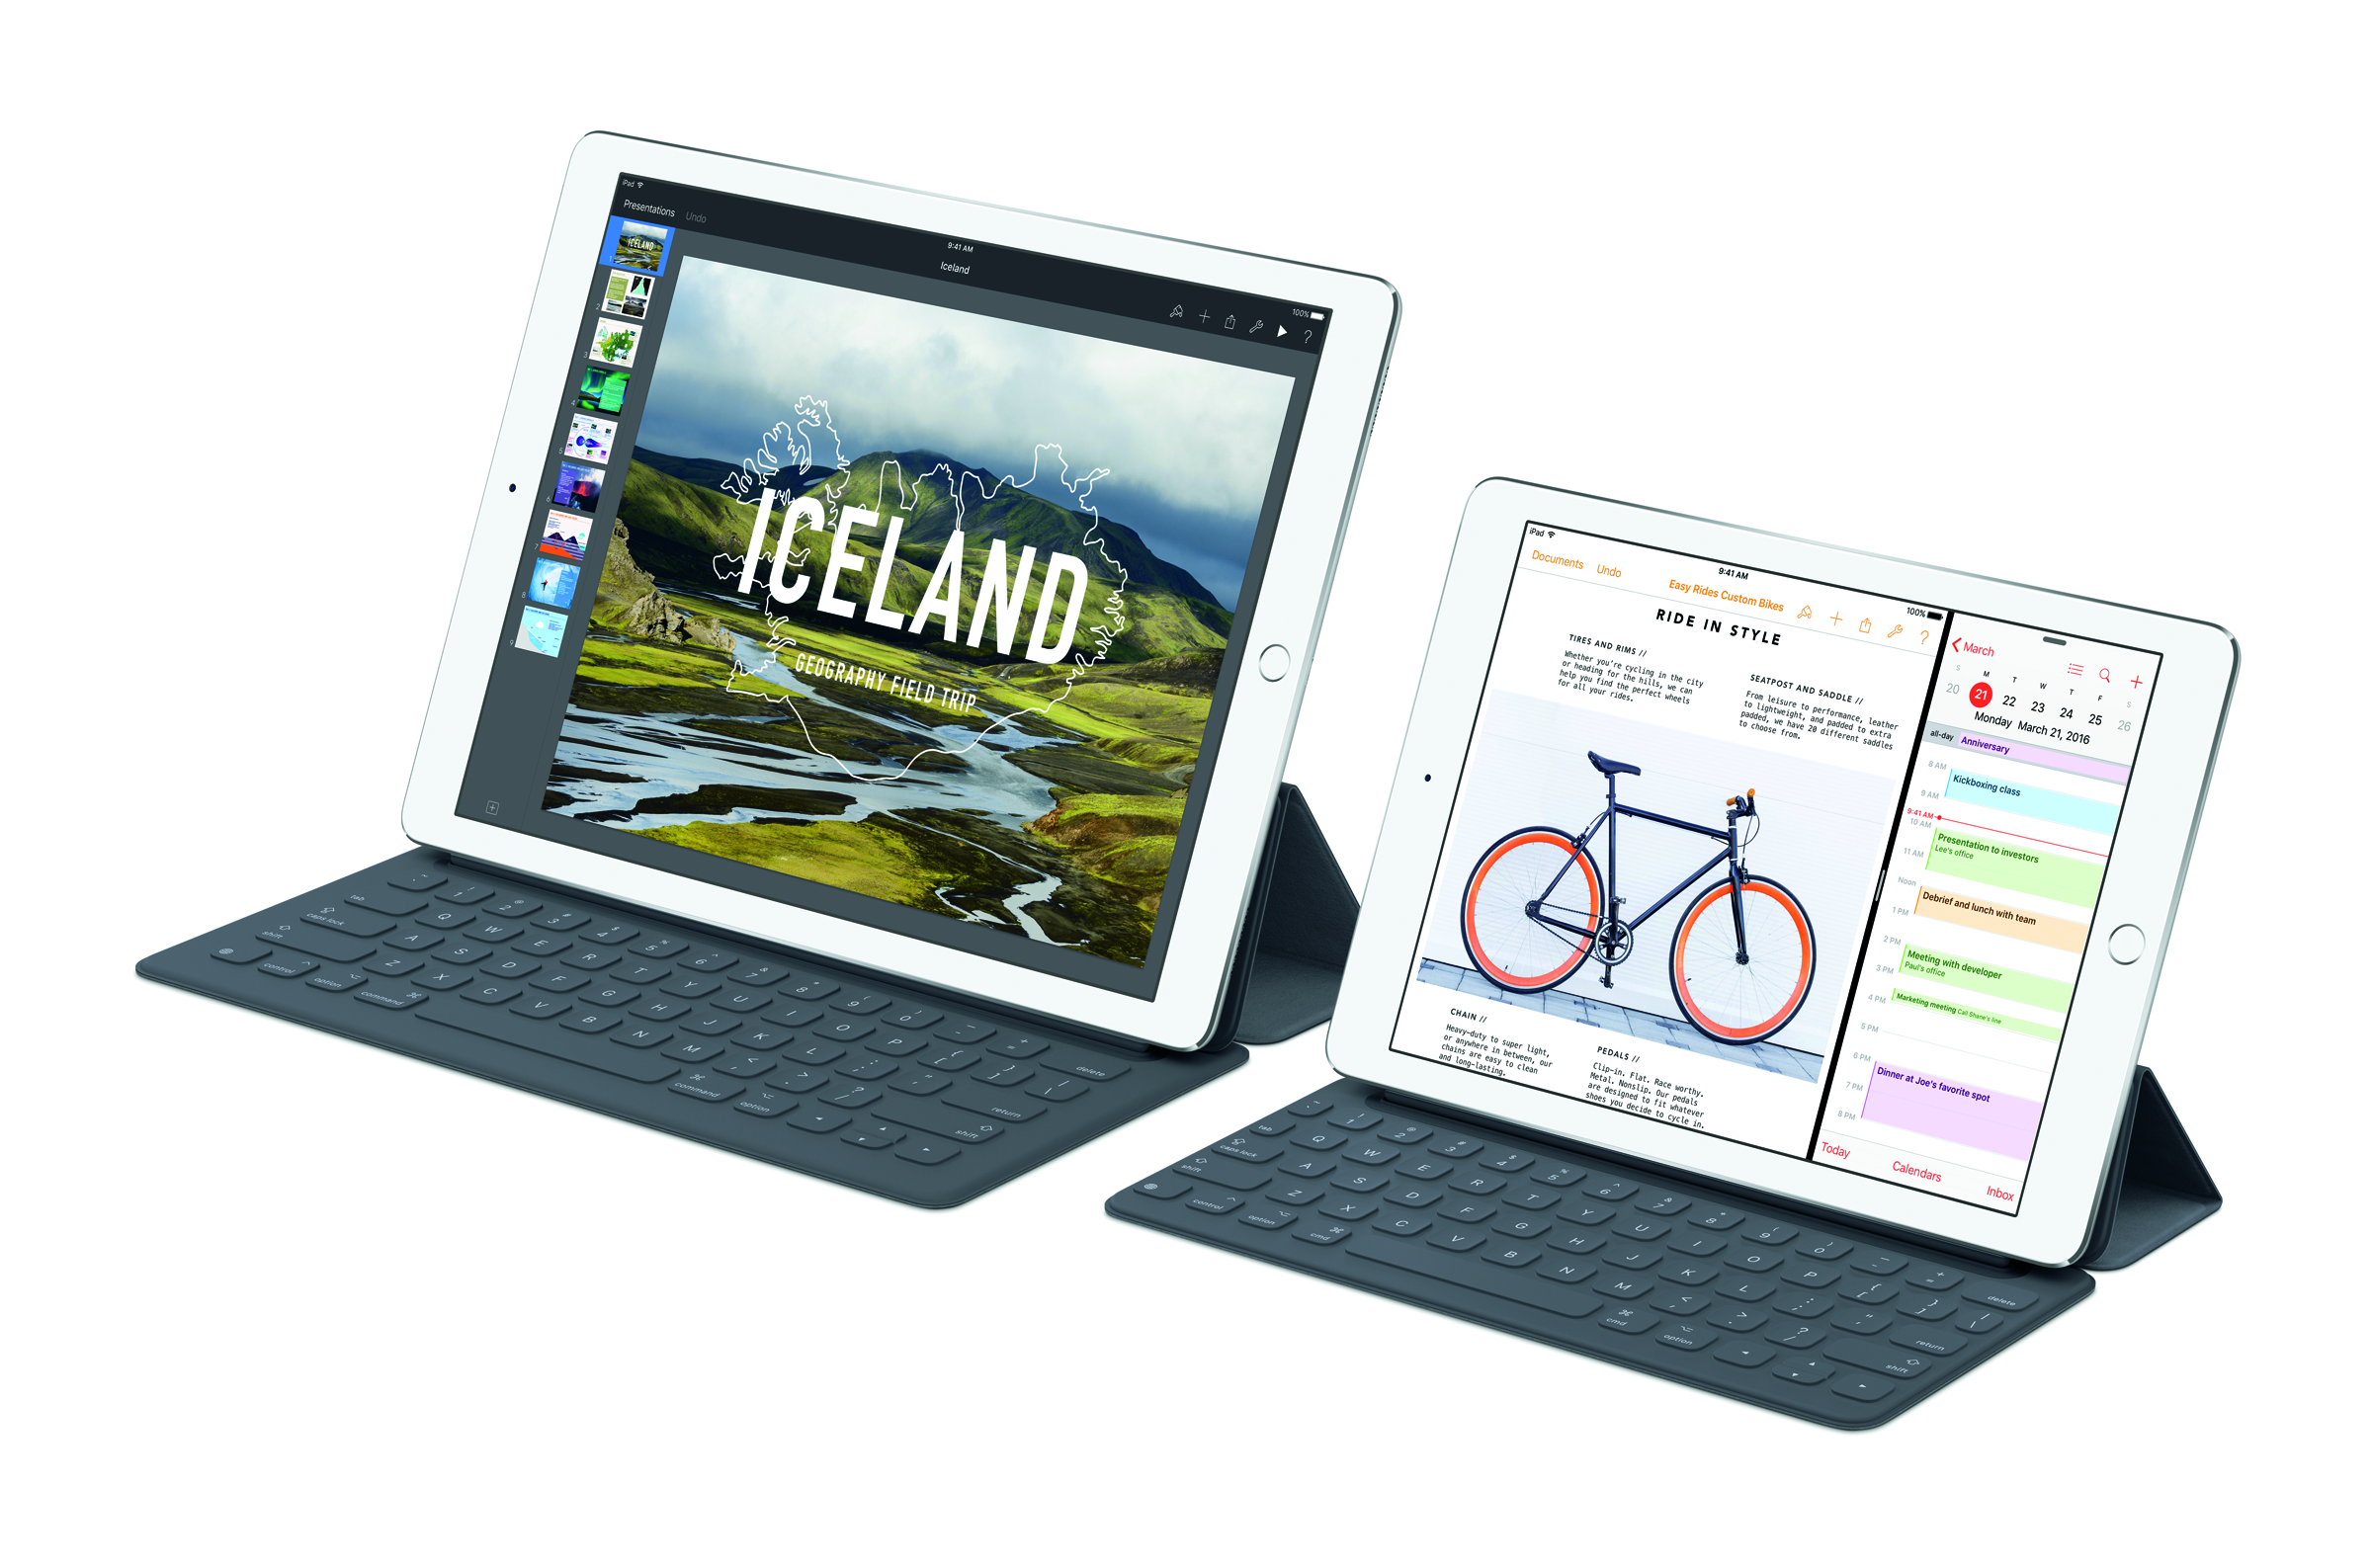 Apple Built The IPad Pro To Replace Windows Not Your 2